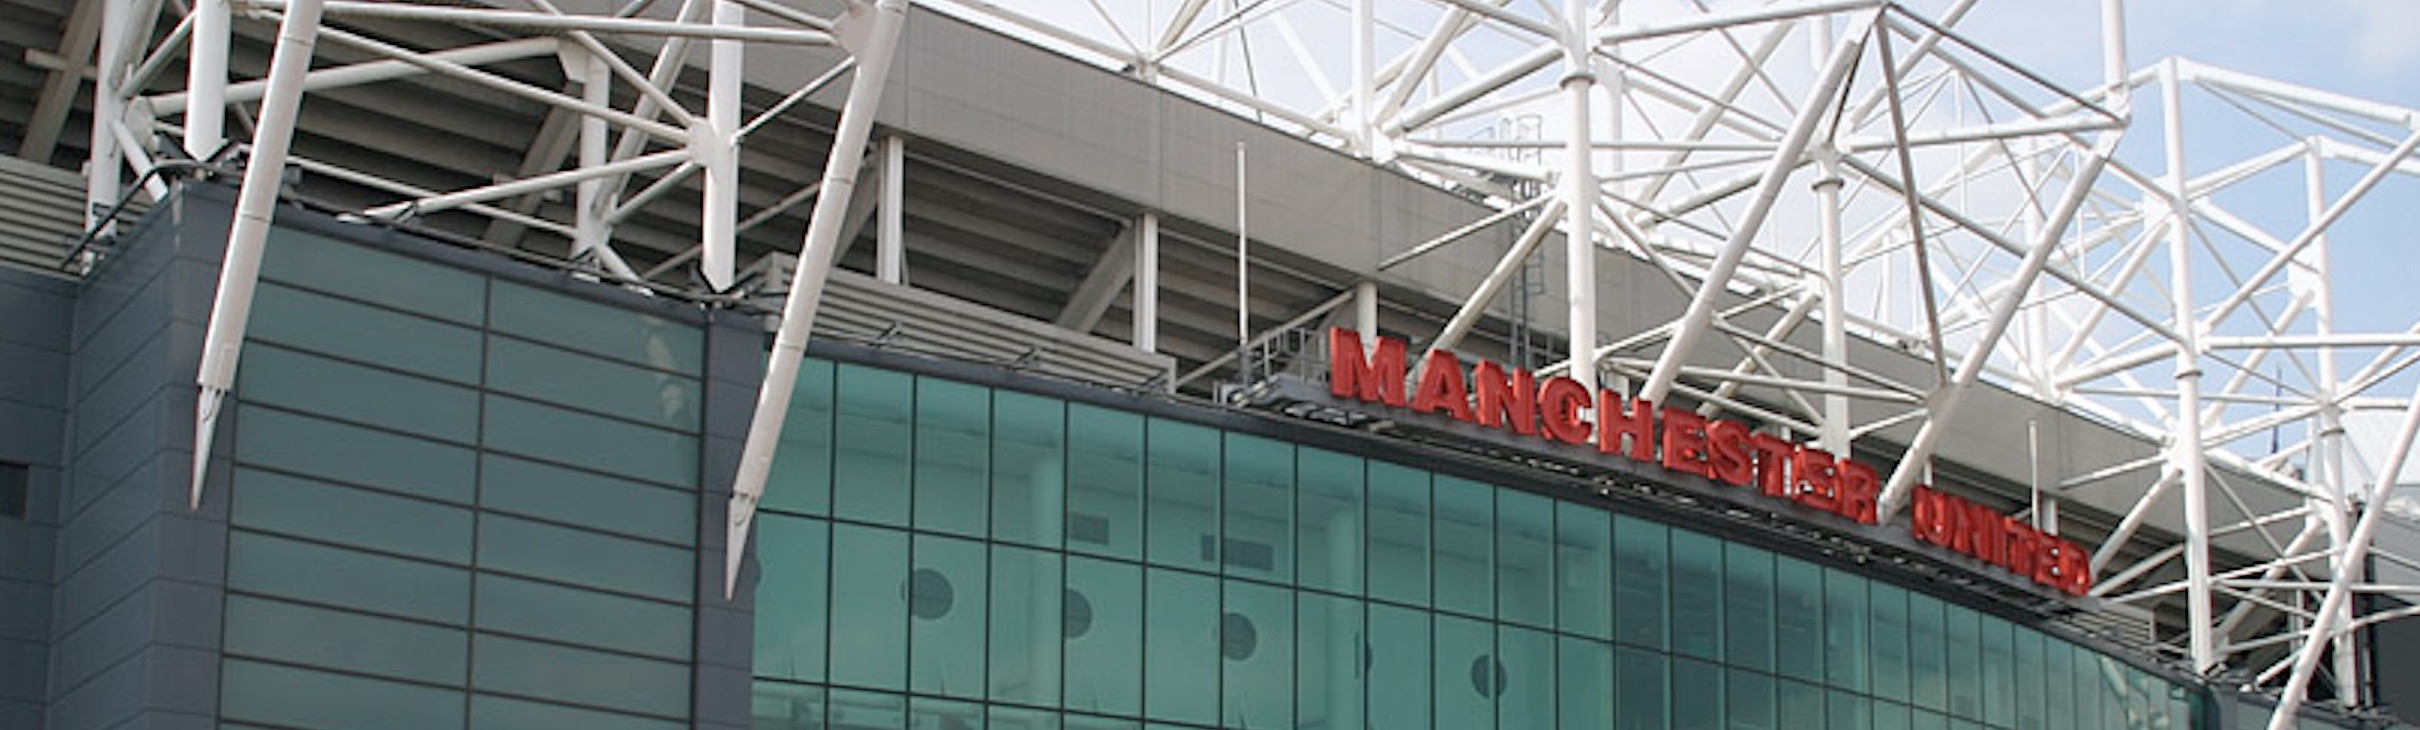 Man United V West Brom - Ticket & Hotel 1 Night